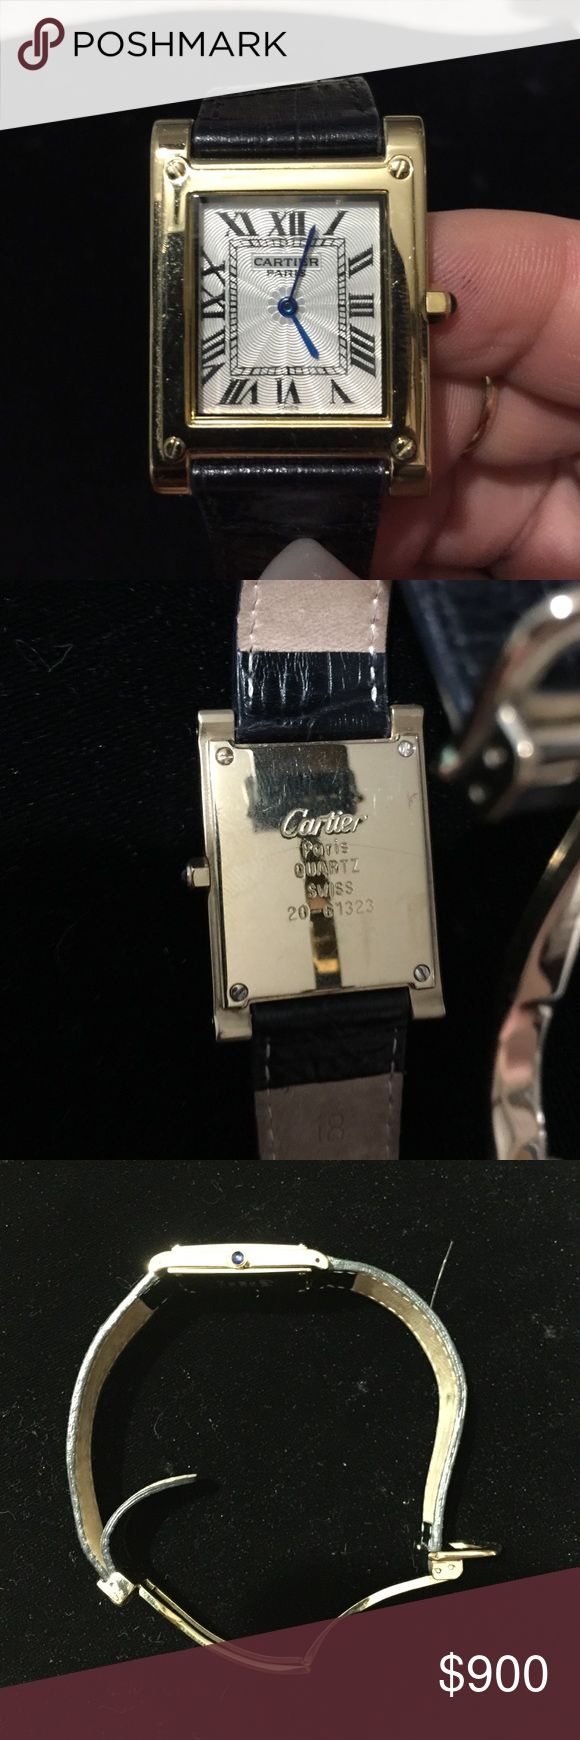 Vintage Cartier Watch Vintage Cartier watch from Paris. Clasp does not work that well - Please look at pictures carefully. Has blue hour and minute hands and blue on the stem. Cleaning out closet - pricing everything to to sell!! Cartier Accessories Watches